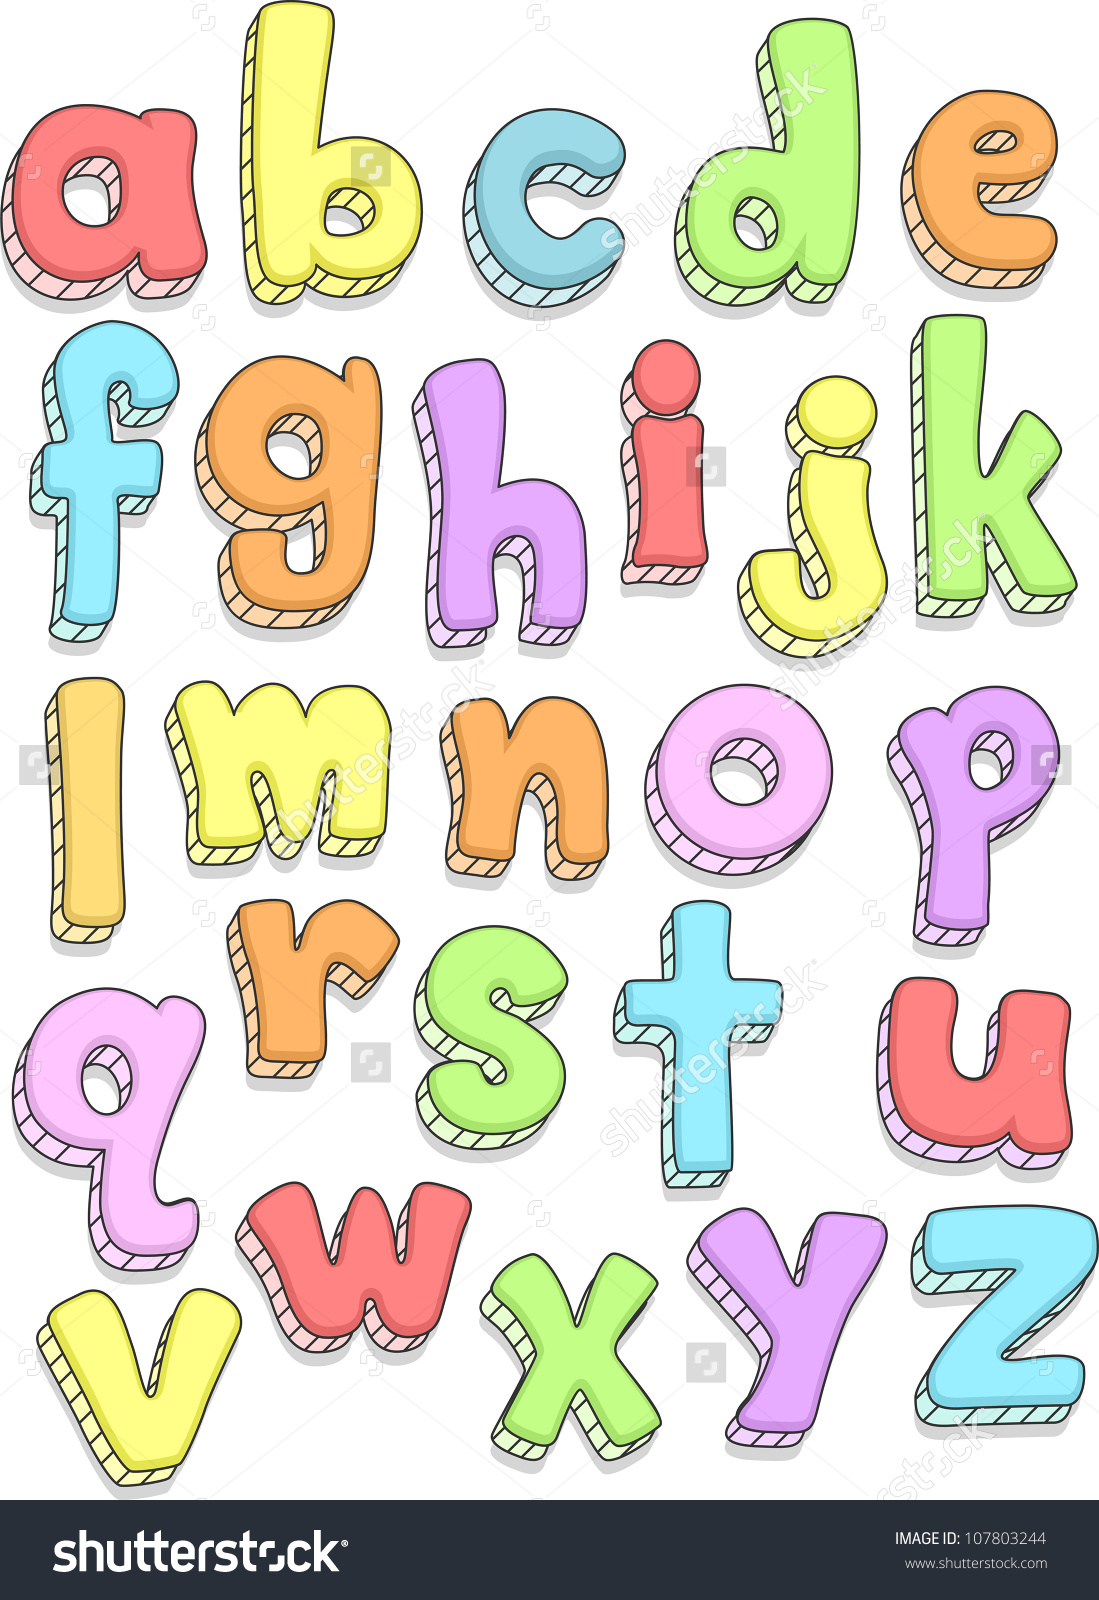 Small alphabet letter clipart png black and white stock Doodle Illustration Featuring Small Letters Alphabet Stock Vector ... png black and white stock